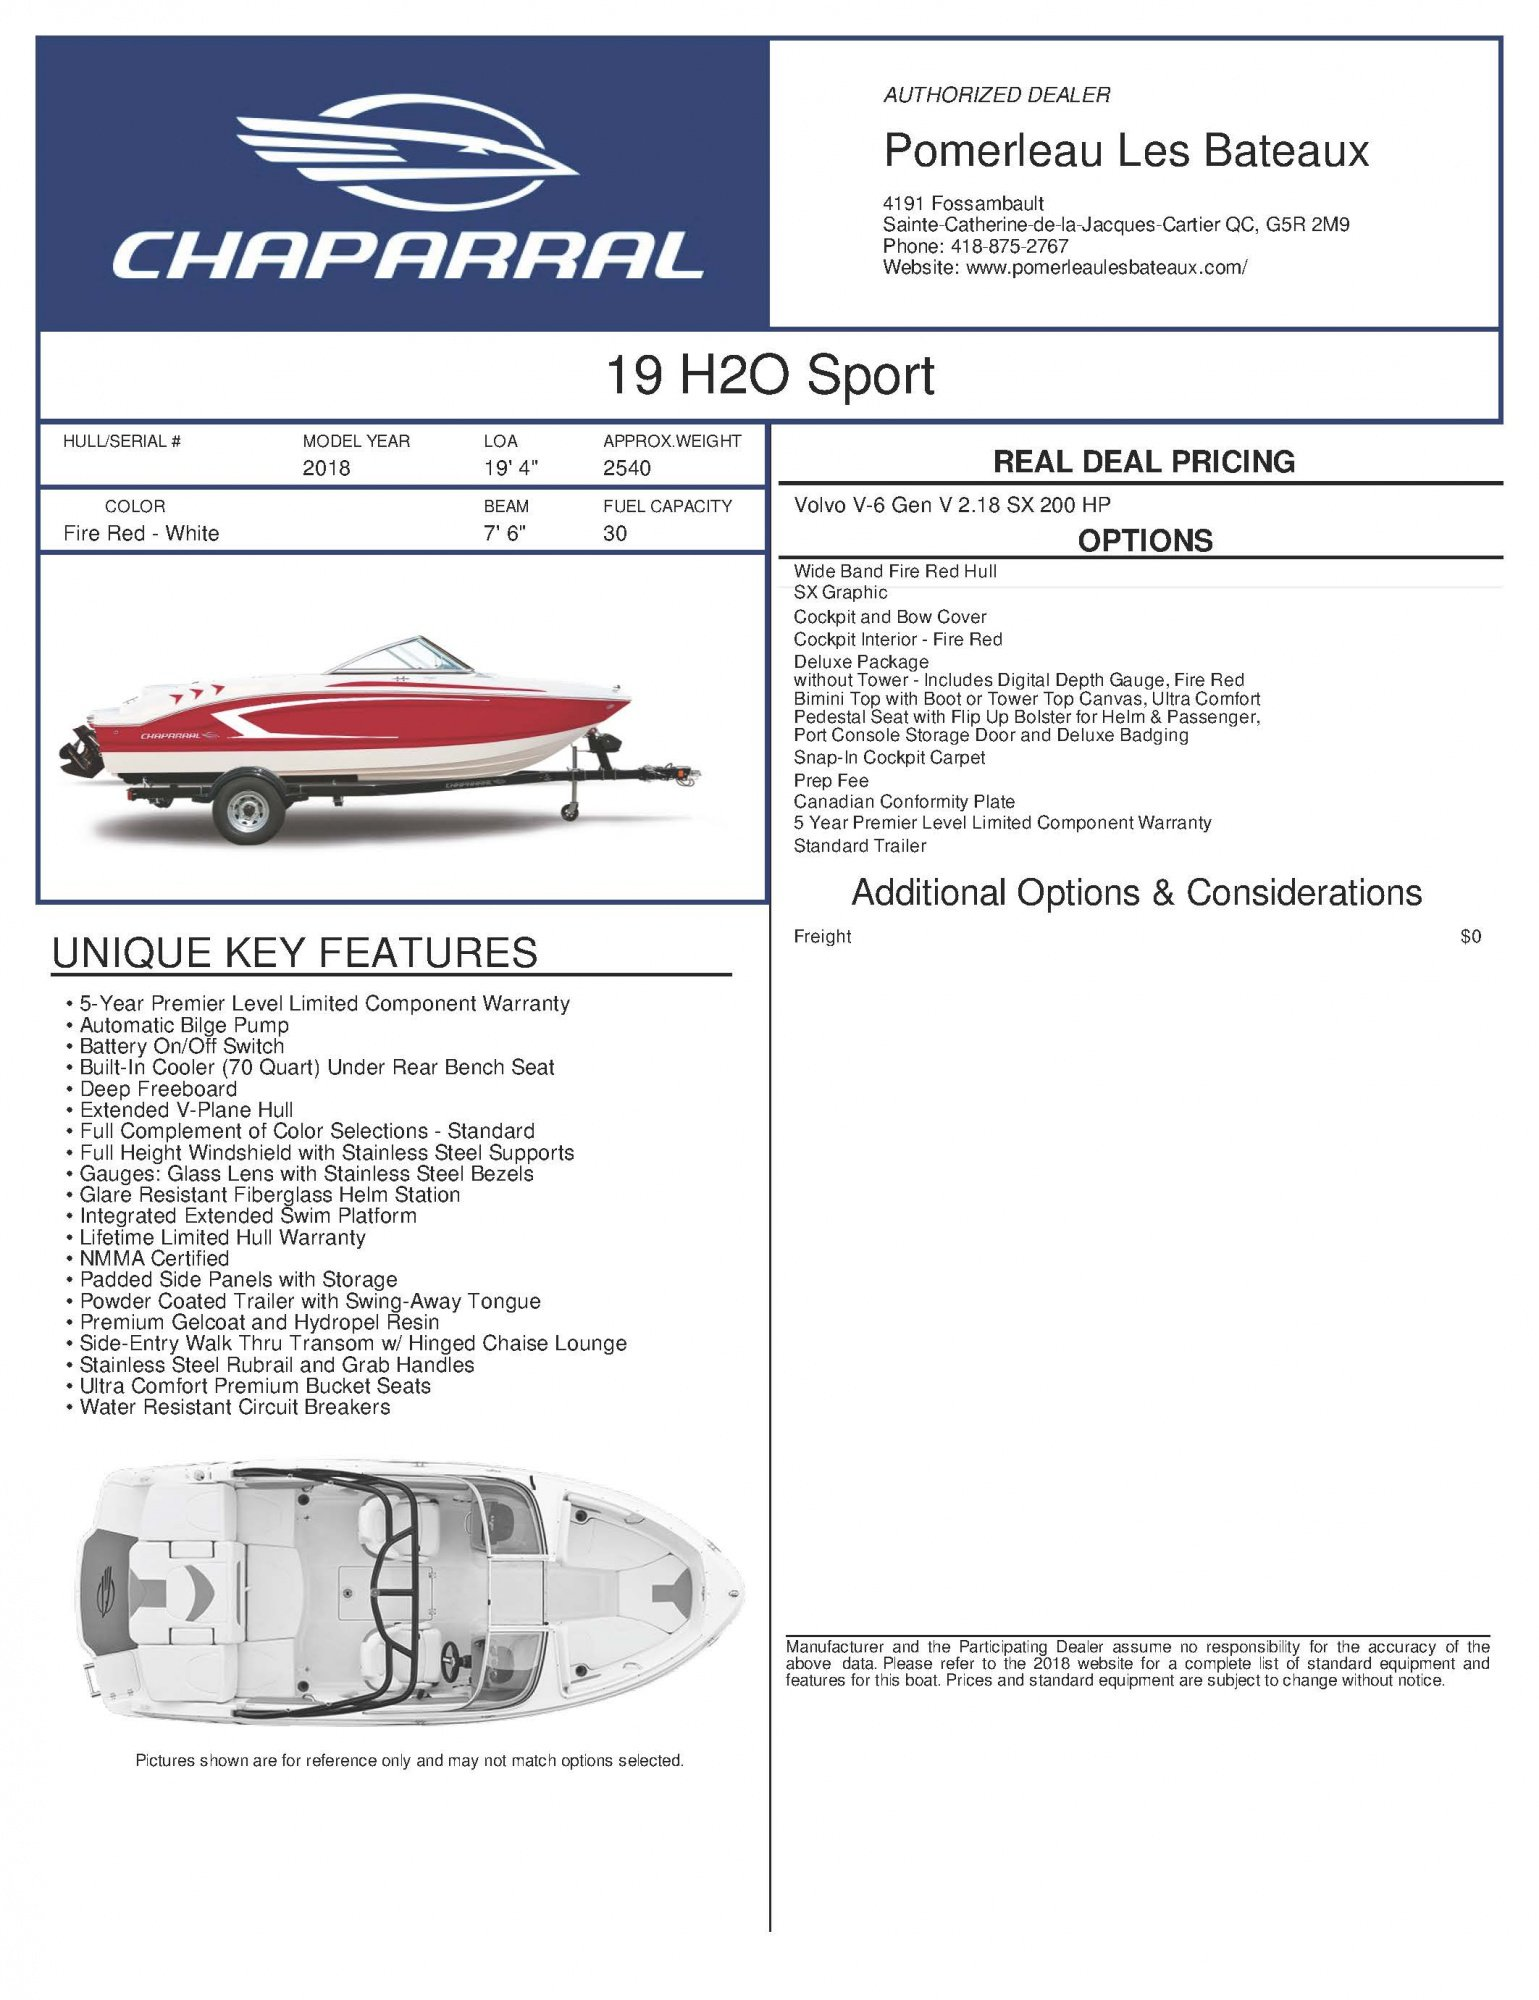 Chaparral H2O 19 - Chaparral-Boats-2018-19-Sport-Window-Sticker-247719